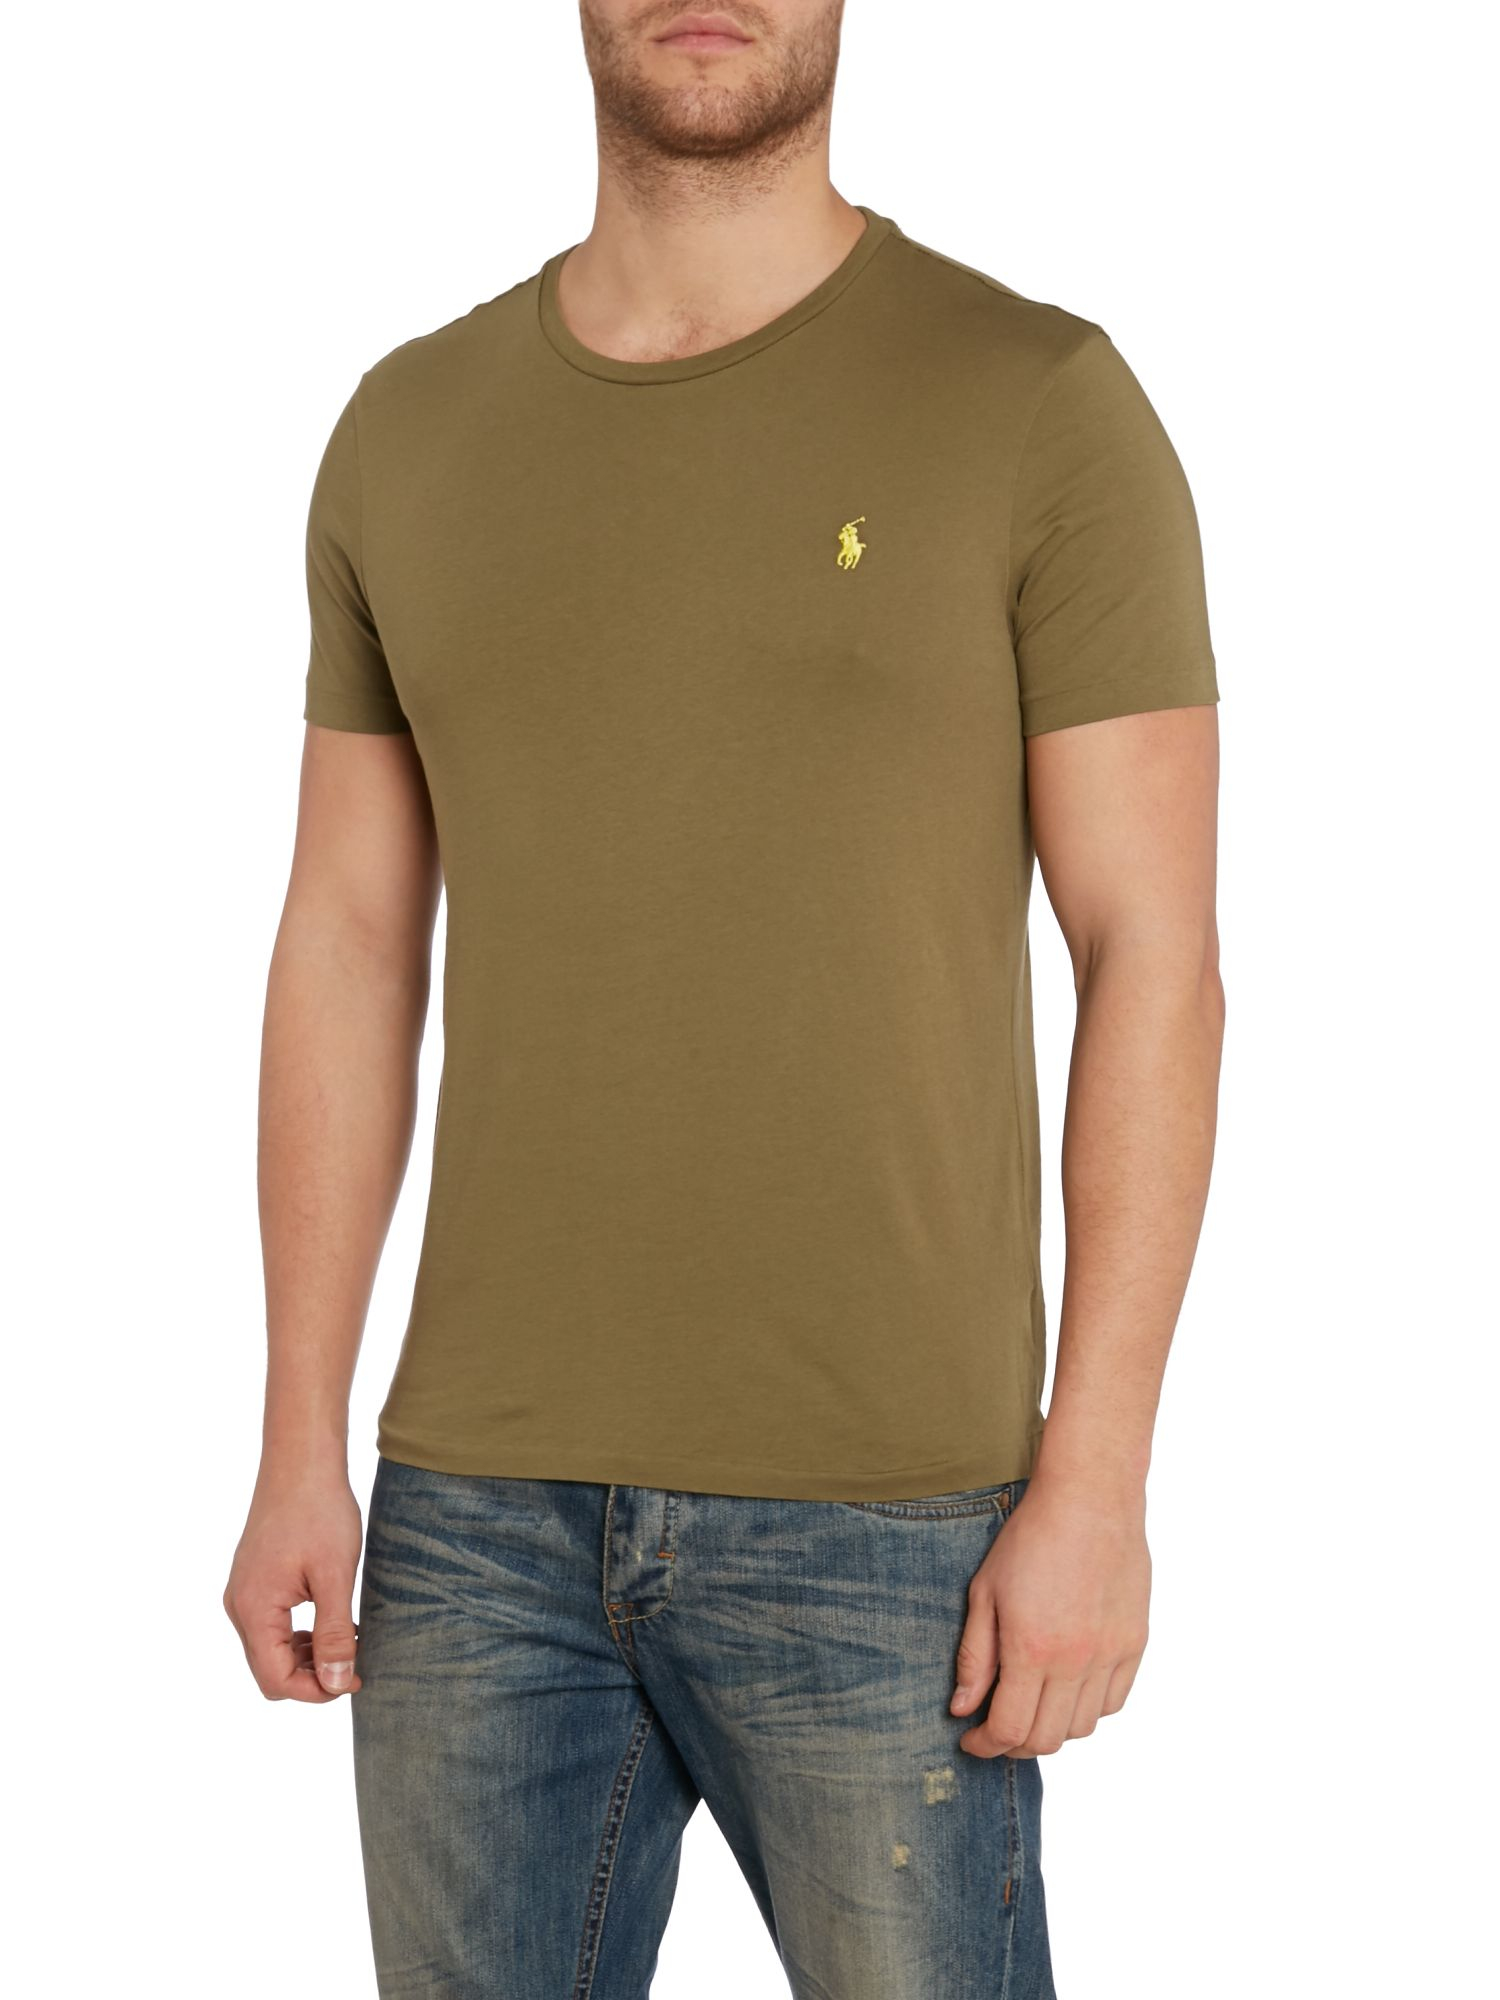 Polo ralph lauren custom fit crew neck short sleeve t for Polo custom fit t shirts